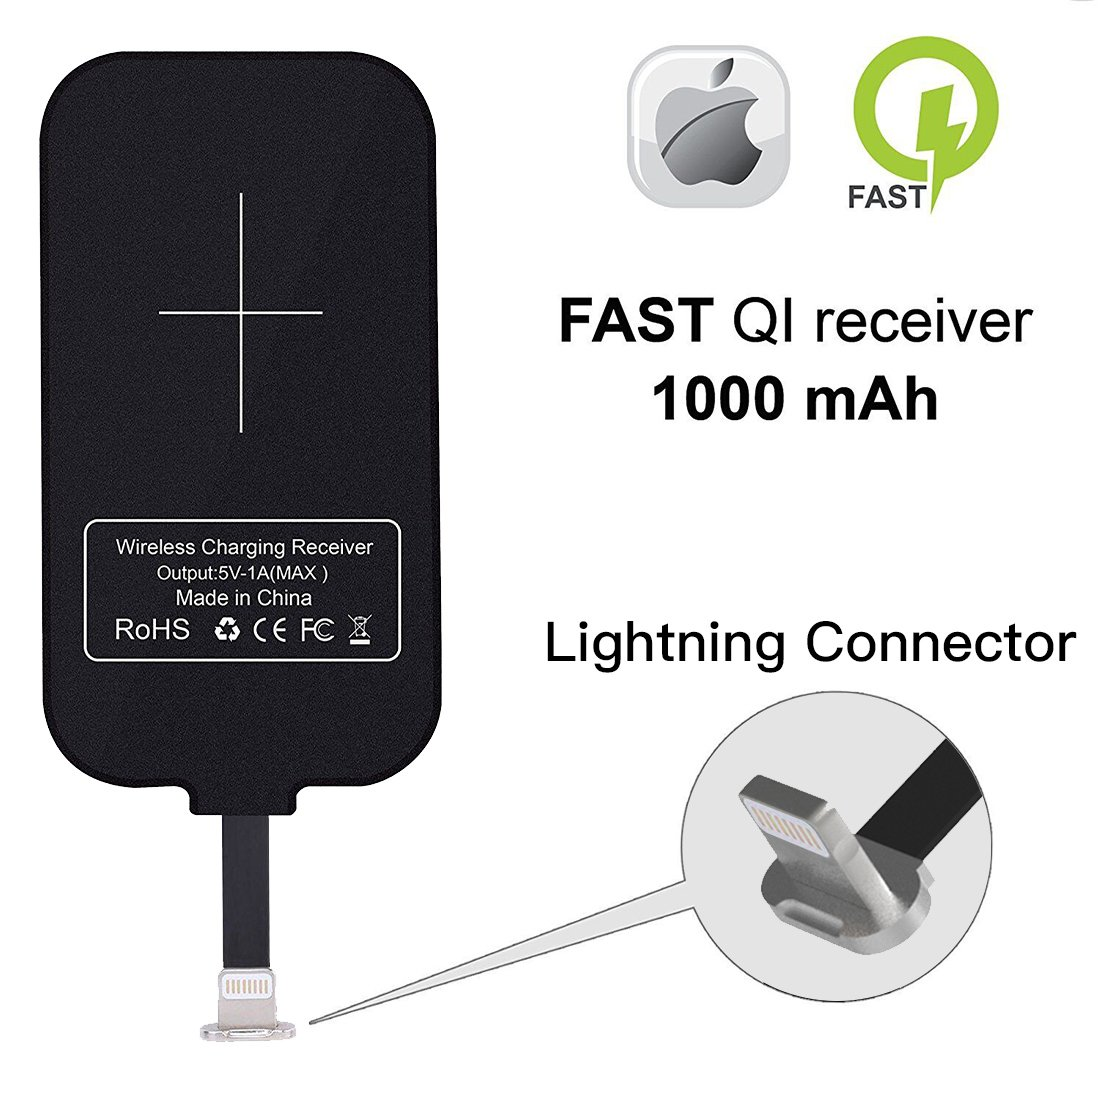 promo code c77a7 b3416 Nillkin iPhone Wireless Charging Receiver Magic Tag Qi Wireless Charger  Receiver 1000mAh for iPhone 7/6/6S/Plus